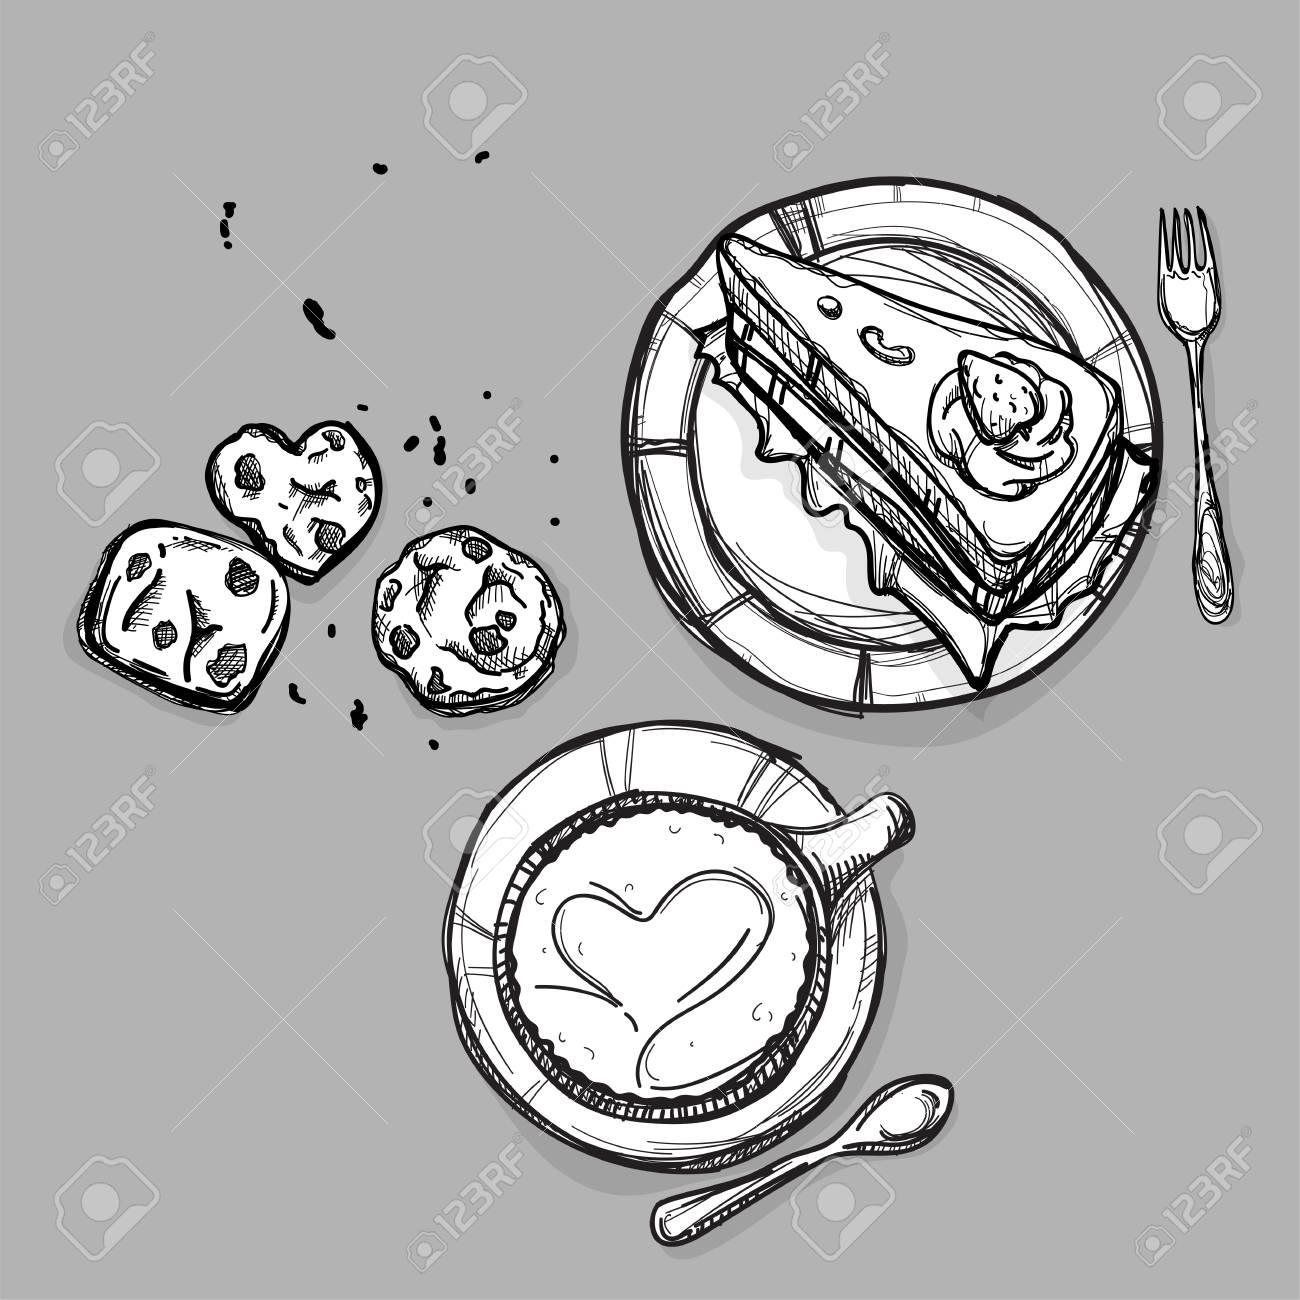 1300x1300 Food Cake Coffee Dessert Cookie Set Drawing Graphic Illustrate